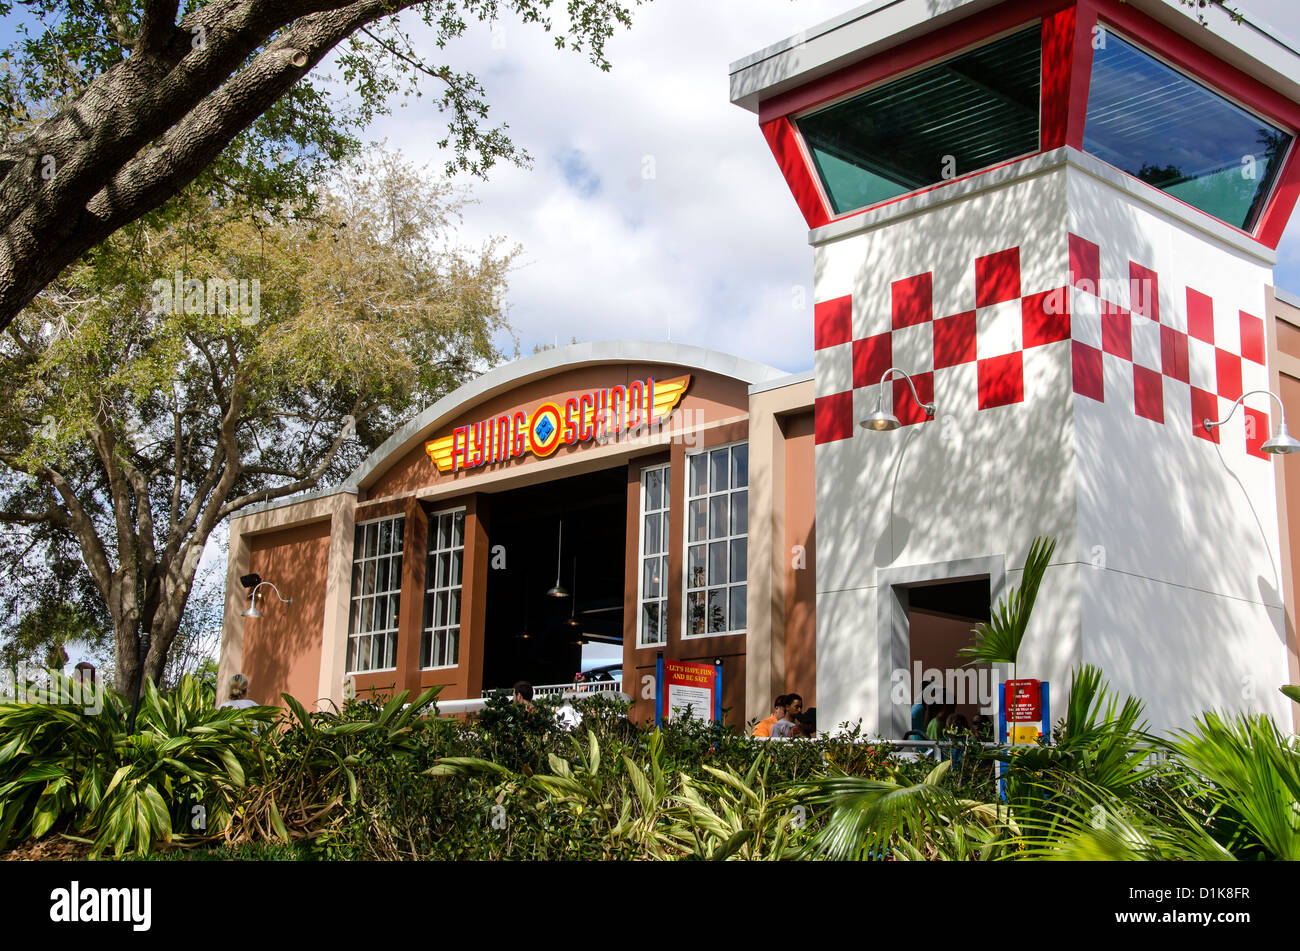 Legoland Florida Flying School ride building, Winter Haven, FL Stock Photo